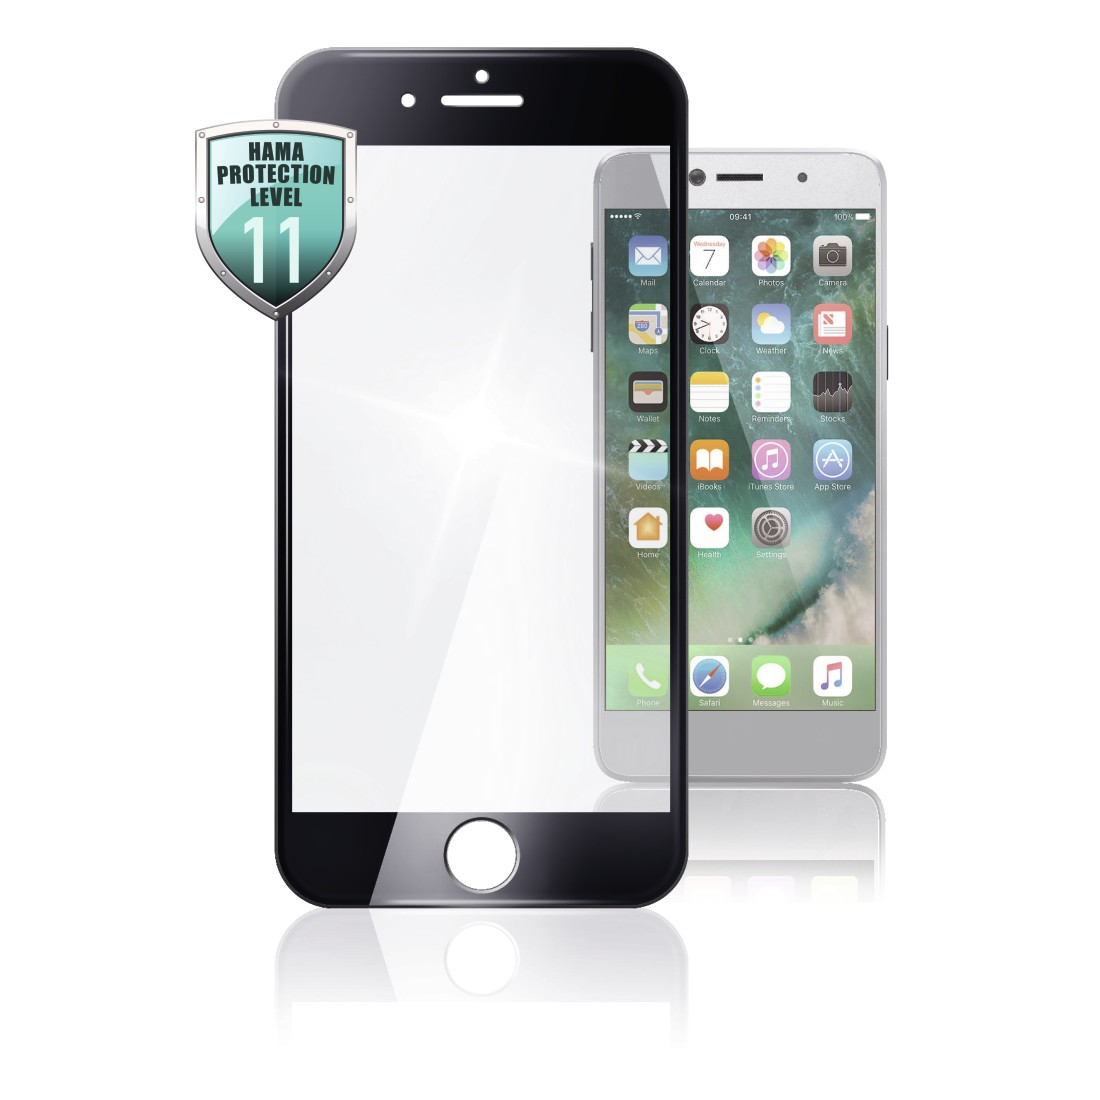 abx High-Res Image - Hama, 3D Full Screen Glass Protector for Apple iPhone 6/6s, black